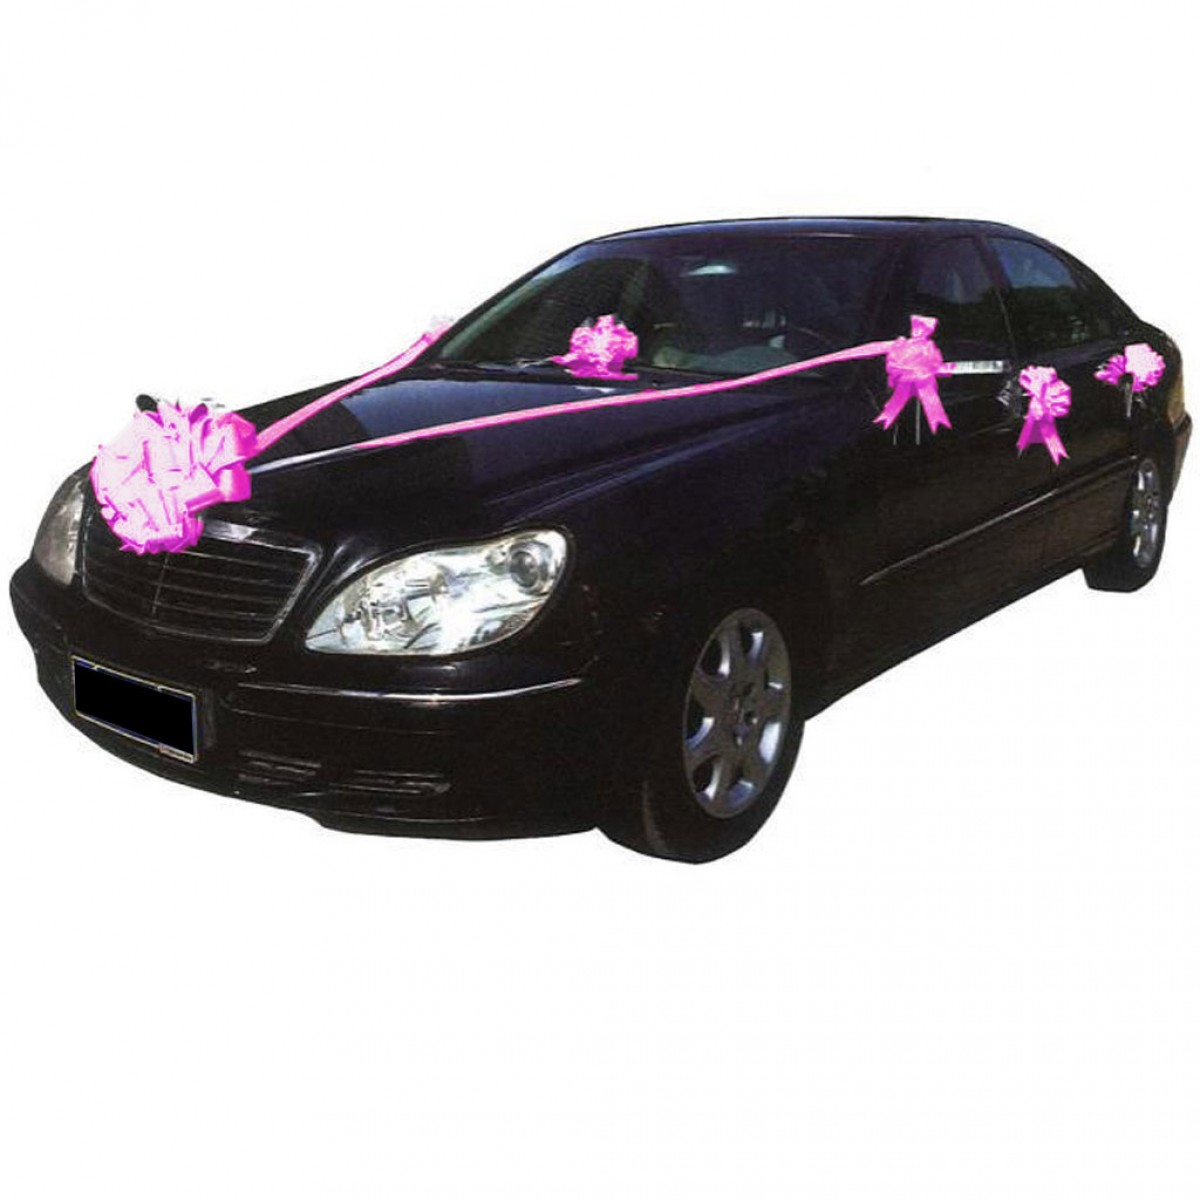 Decoration Mariage Voiture Tulle Decoration Voiture Mariage Gifi